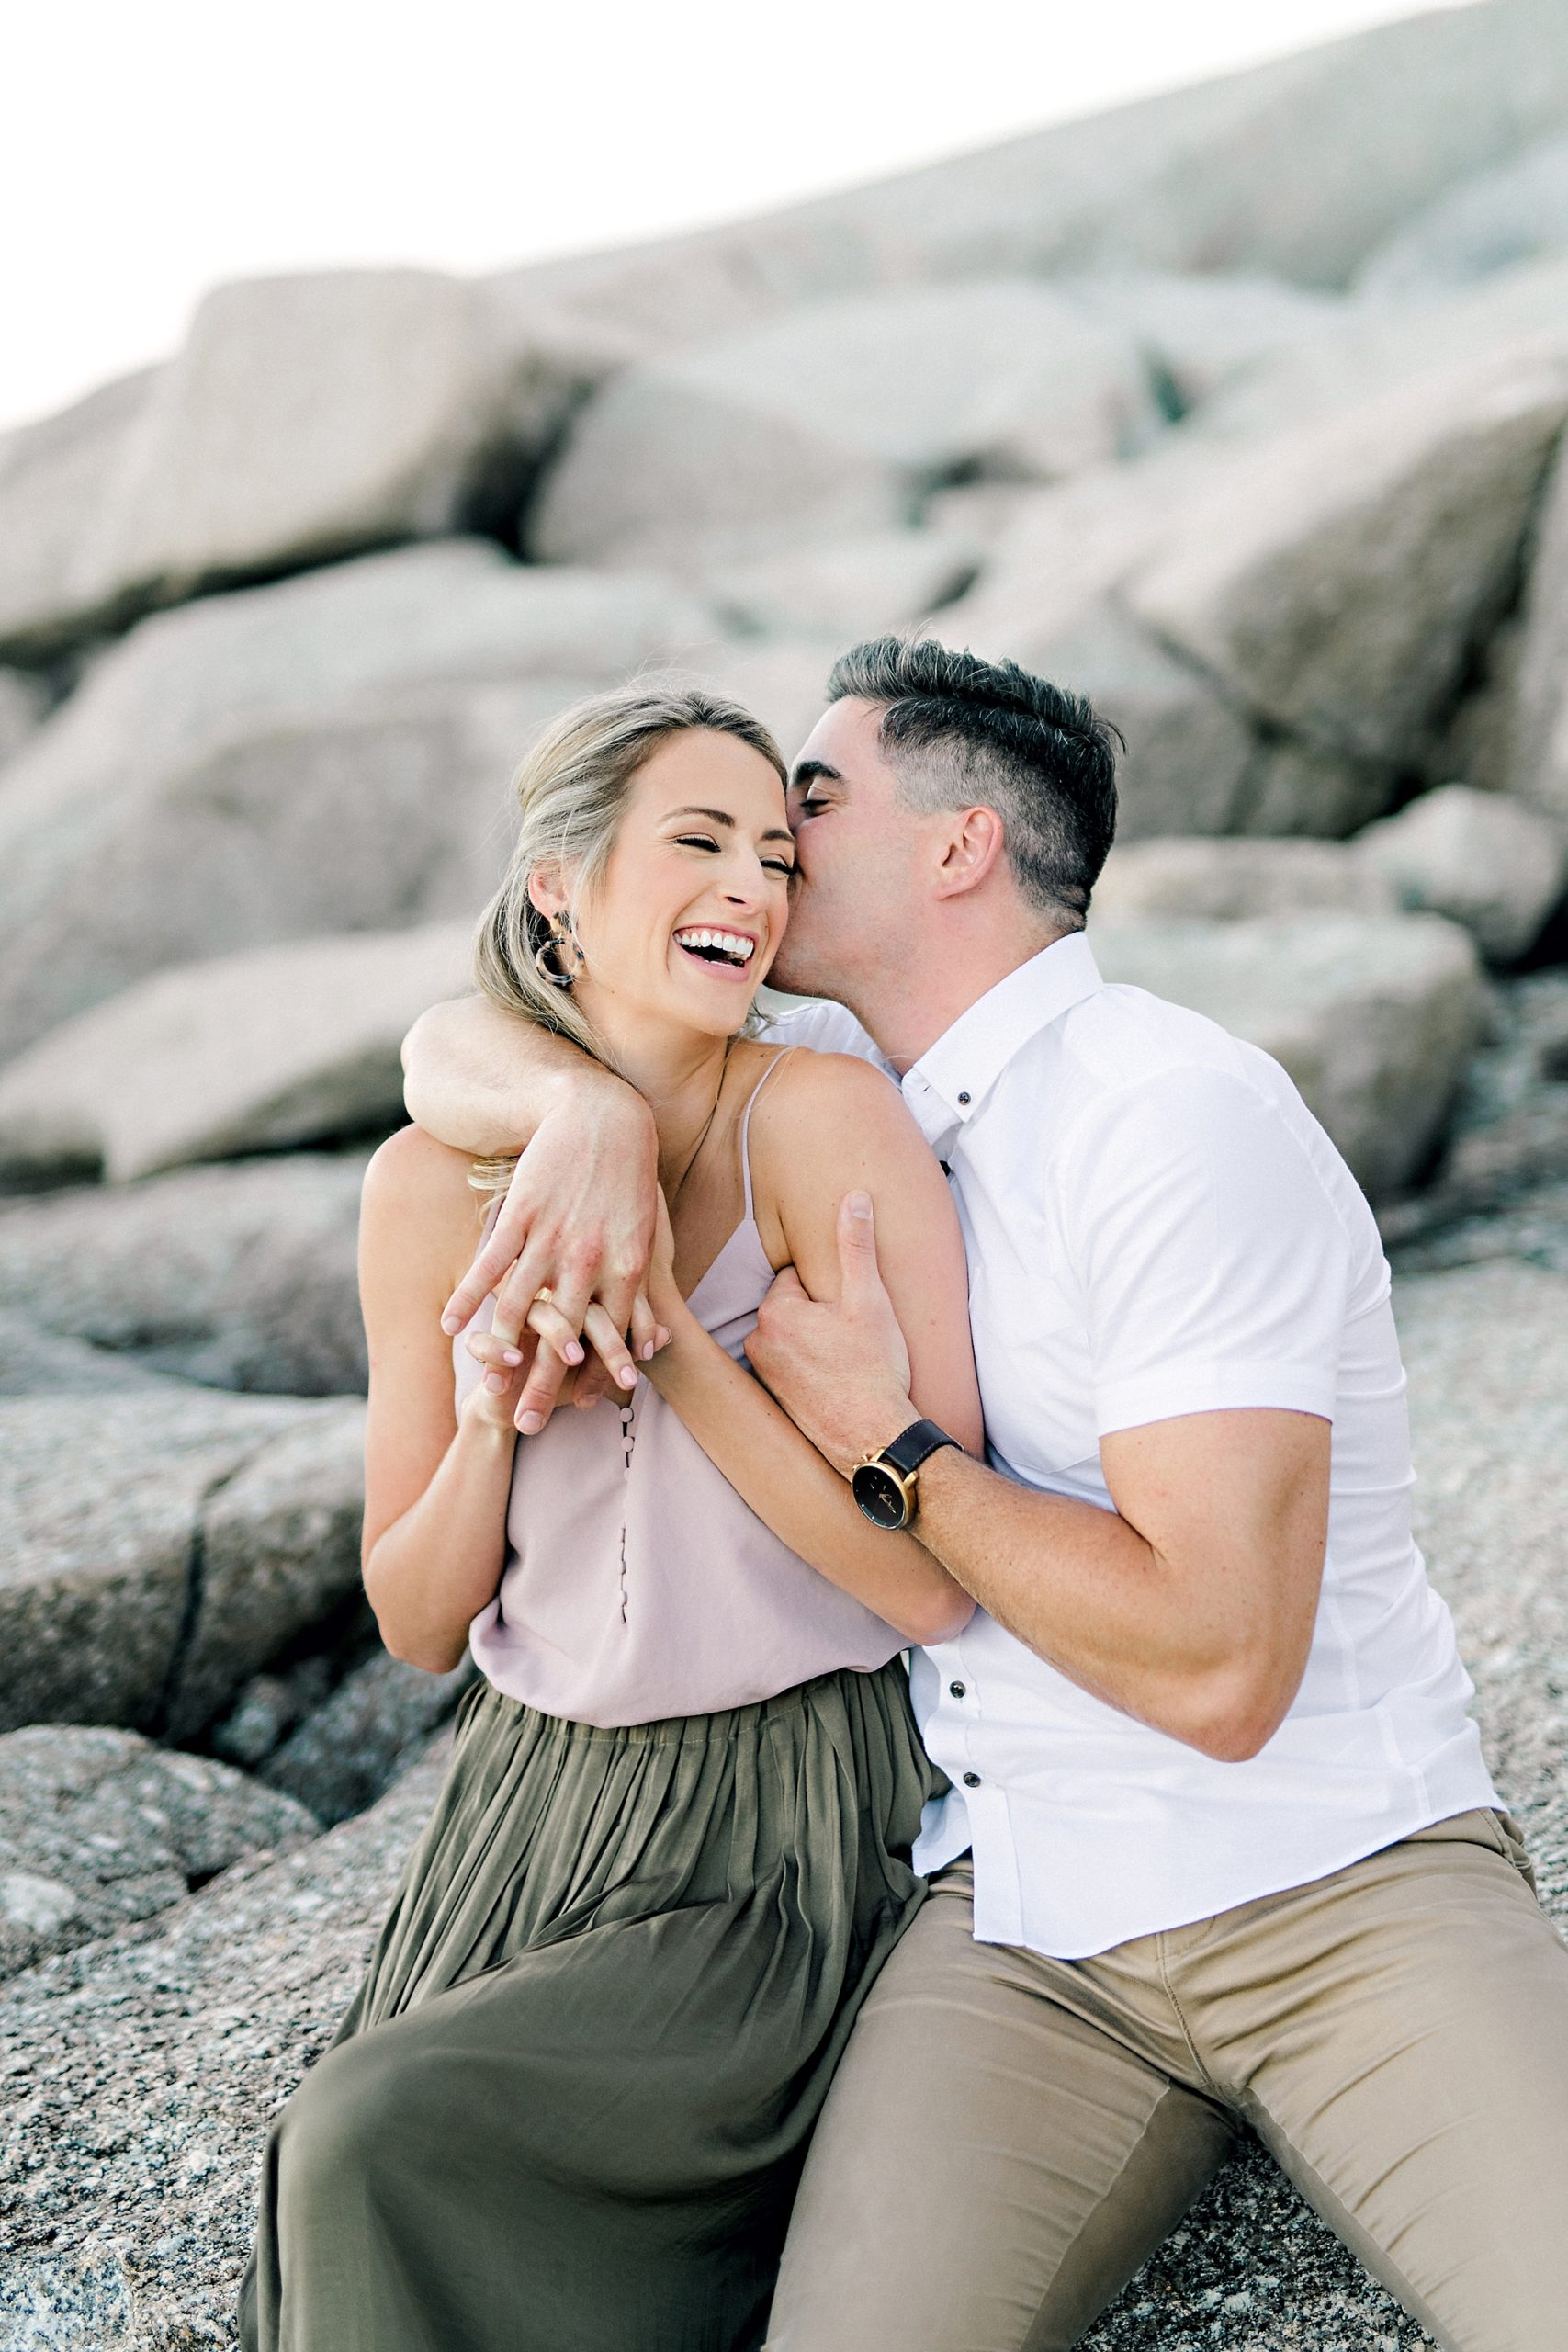 handsome guy kissing his fiancee on her cheek and making her laugh on the rocks by the ocean